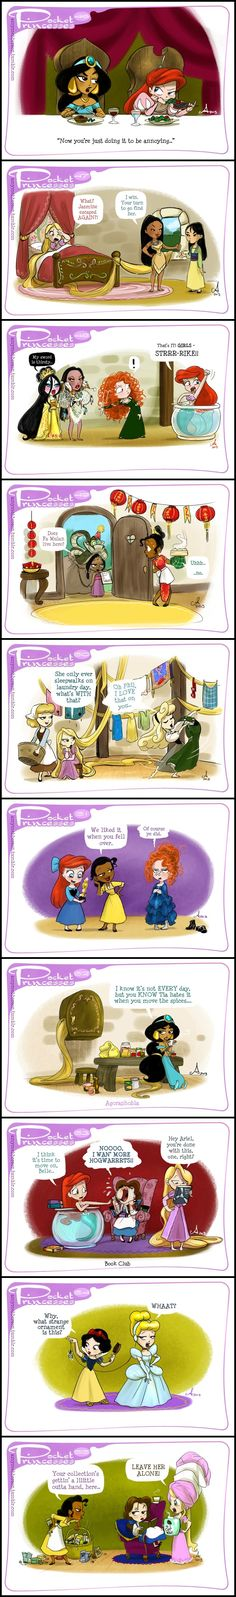 Pocket Princesses (Part 5) by Amy Mebberson